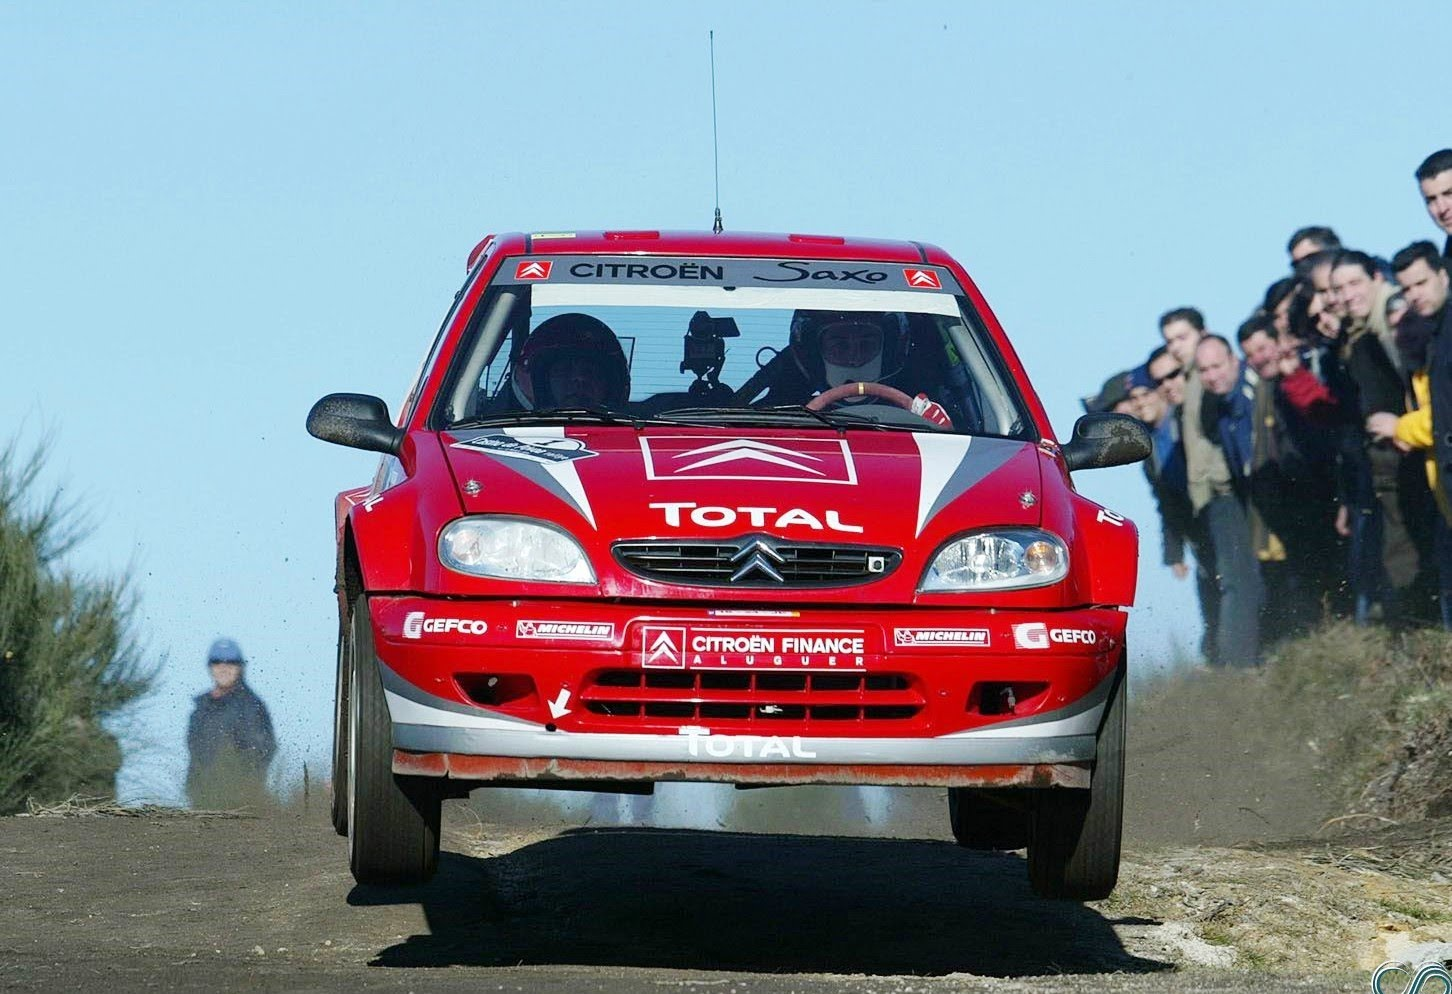 2005 ford fiesta with Os Carros Vencedores Do Rally Portugal 2a Parte on Watch additionally Z8h3o9 furthermore New Fiesta S Branco 2 also Rodas Maiores Podem Causar Problemas furthermore Watch.